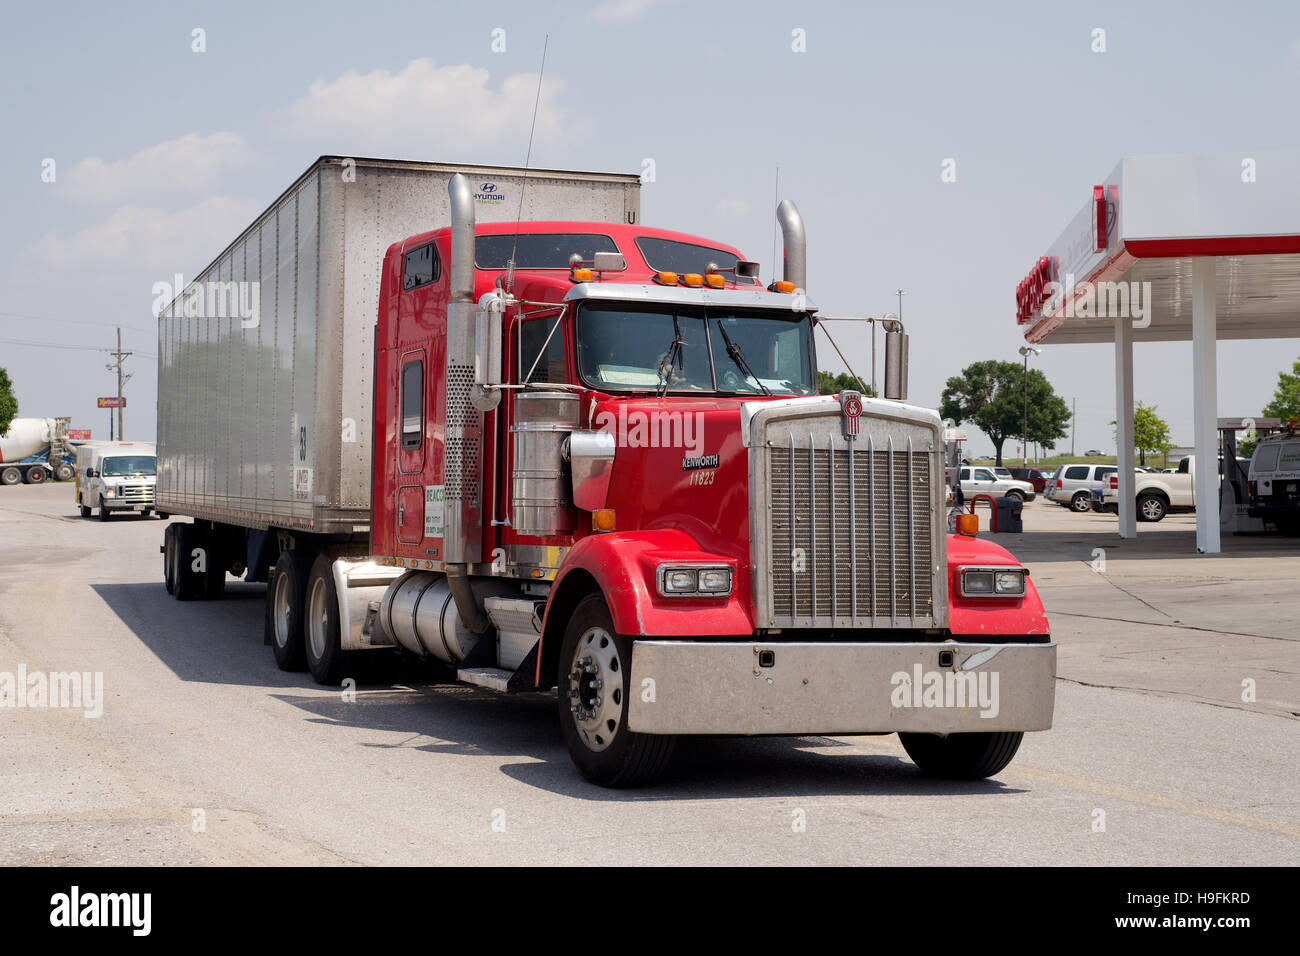 Kenworth Truck and Trailer pulling in to Sapp Bros Truck Stop at Omaha, Nebraska, USA. - Stock Image